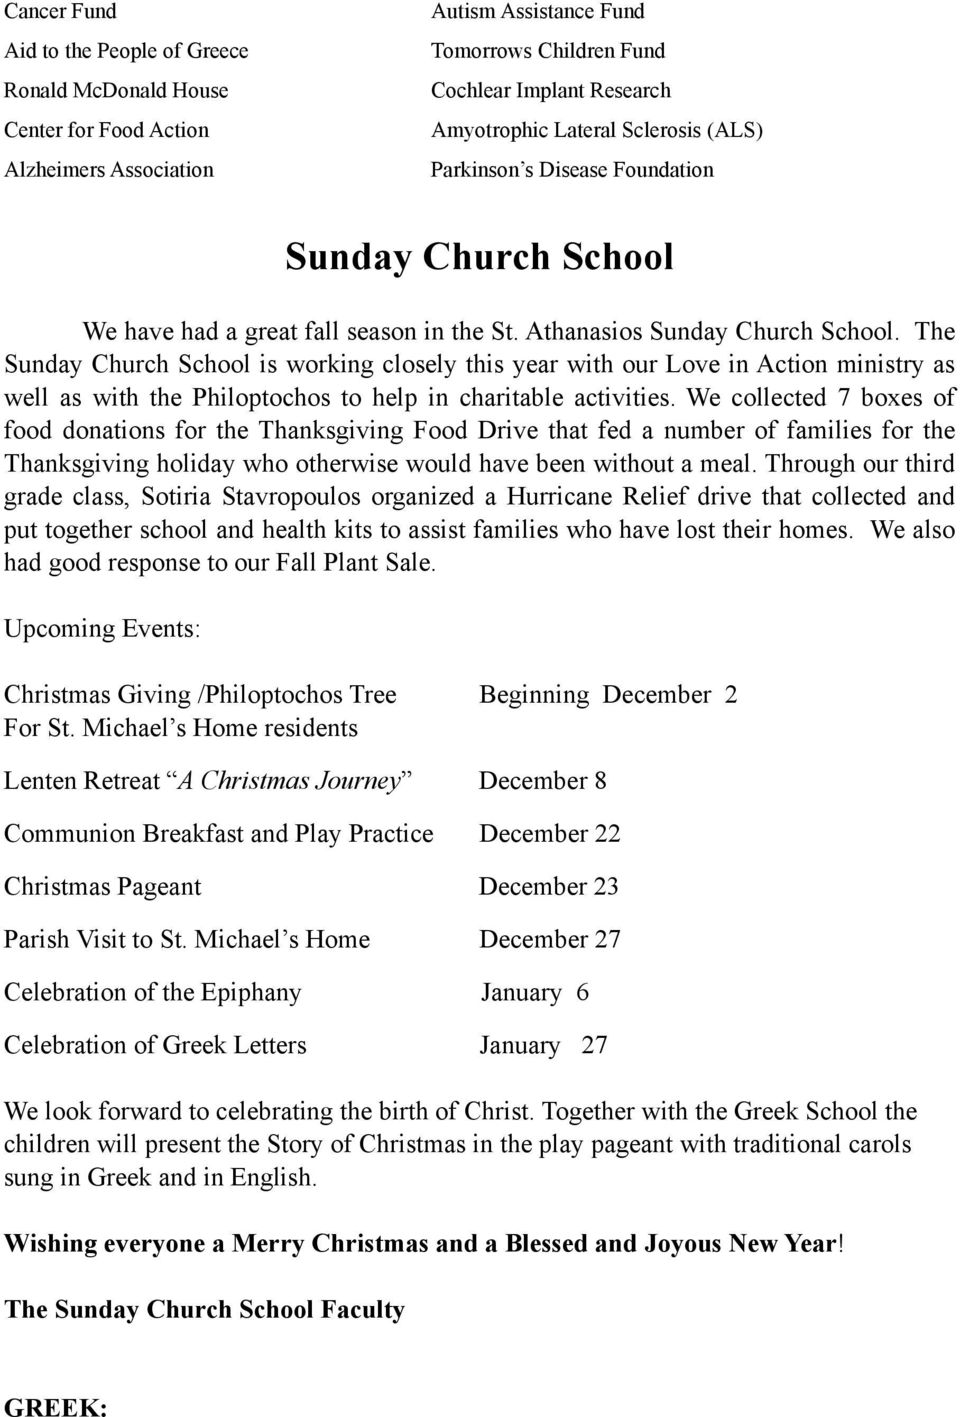 The Sunday Church School is working closely this year with our Love in Action ministry as well as with the Philoptochos to help in charitable activities.